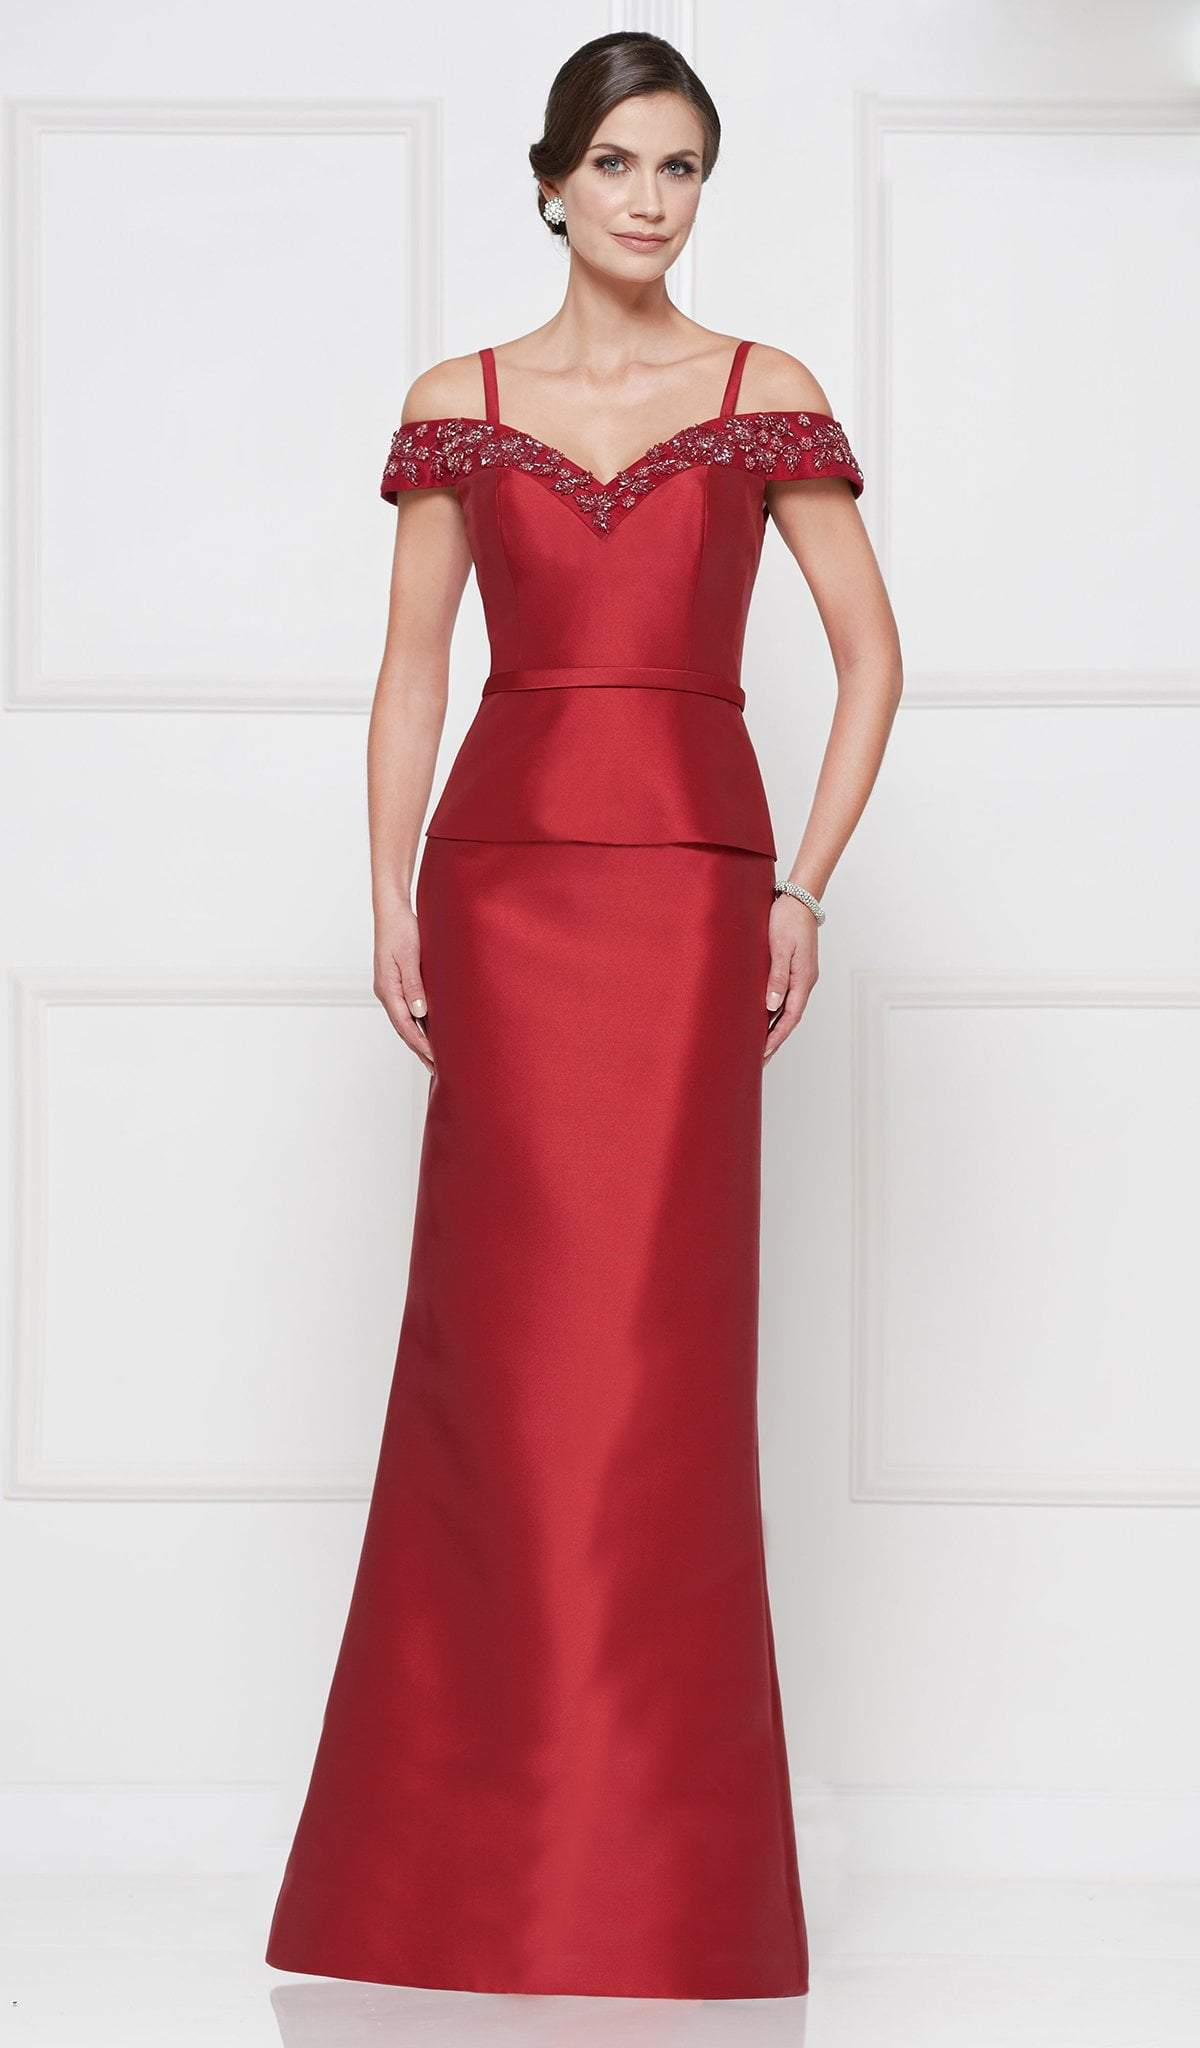 Rina Di Montella - RD2643 Floral Beaded Off Shoulder Peplum Gown In Red